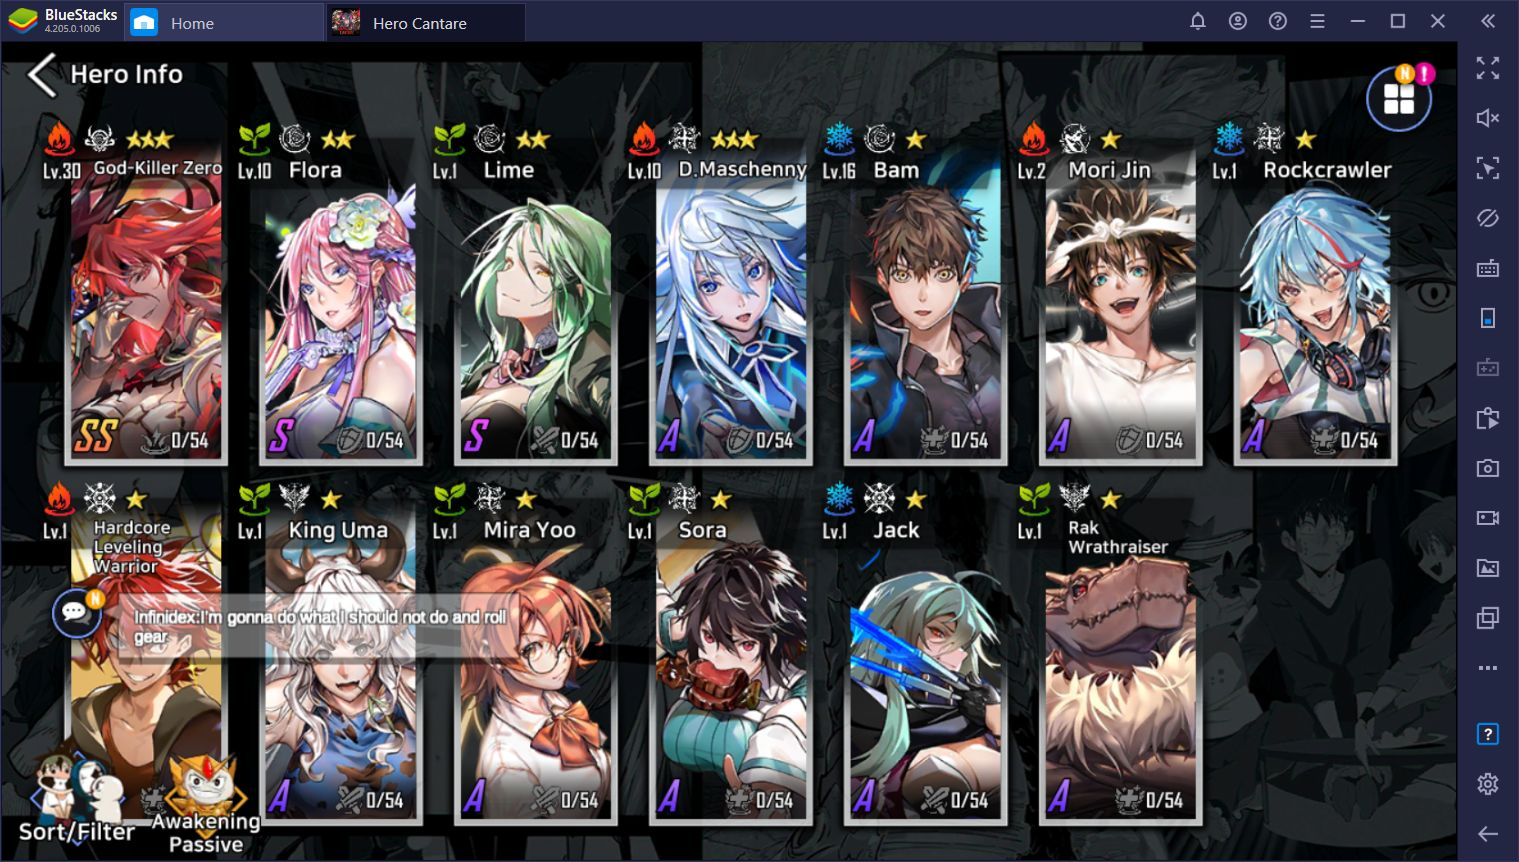 How to Play Hero Cantare With WEBTOON on PC